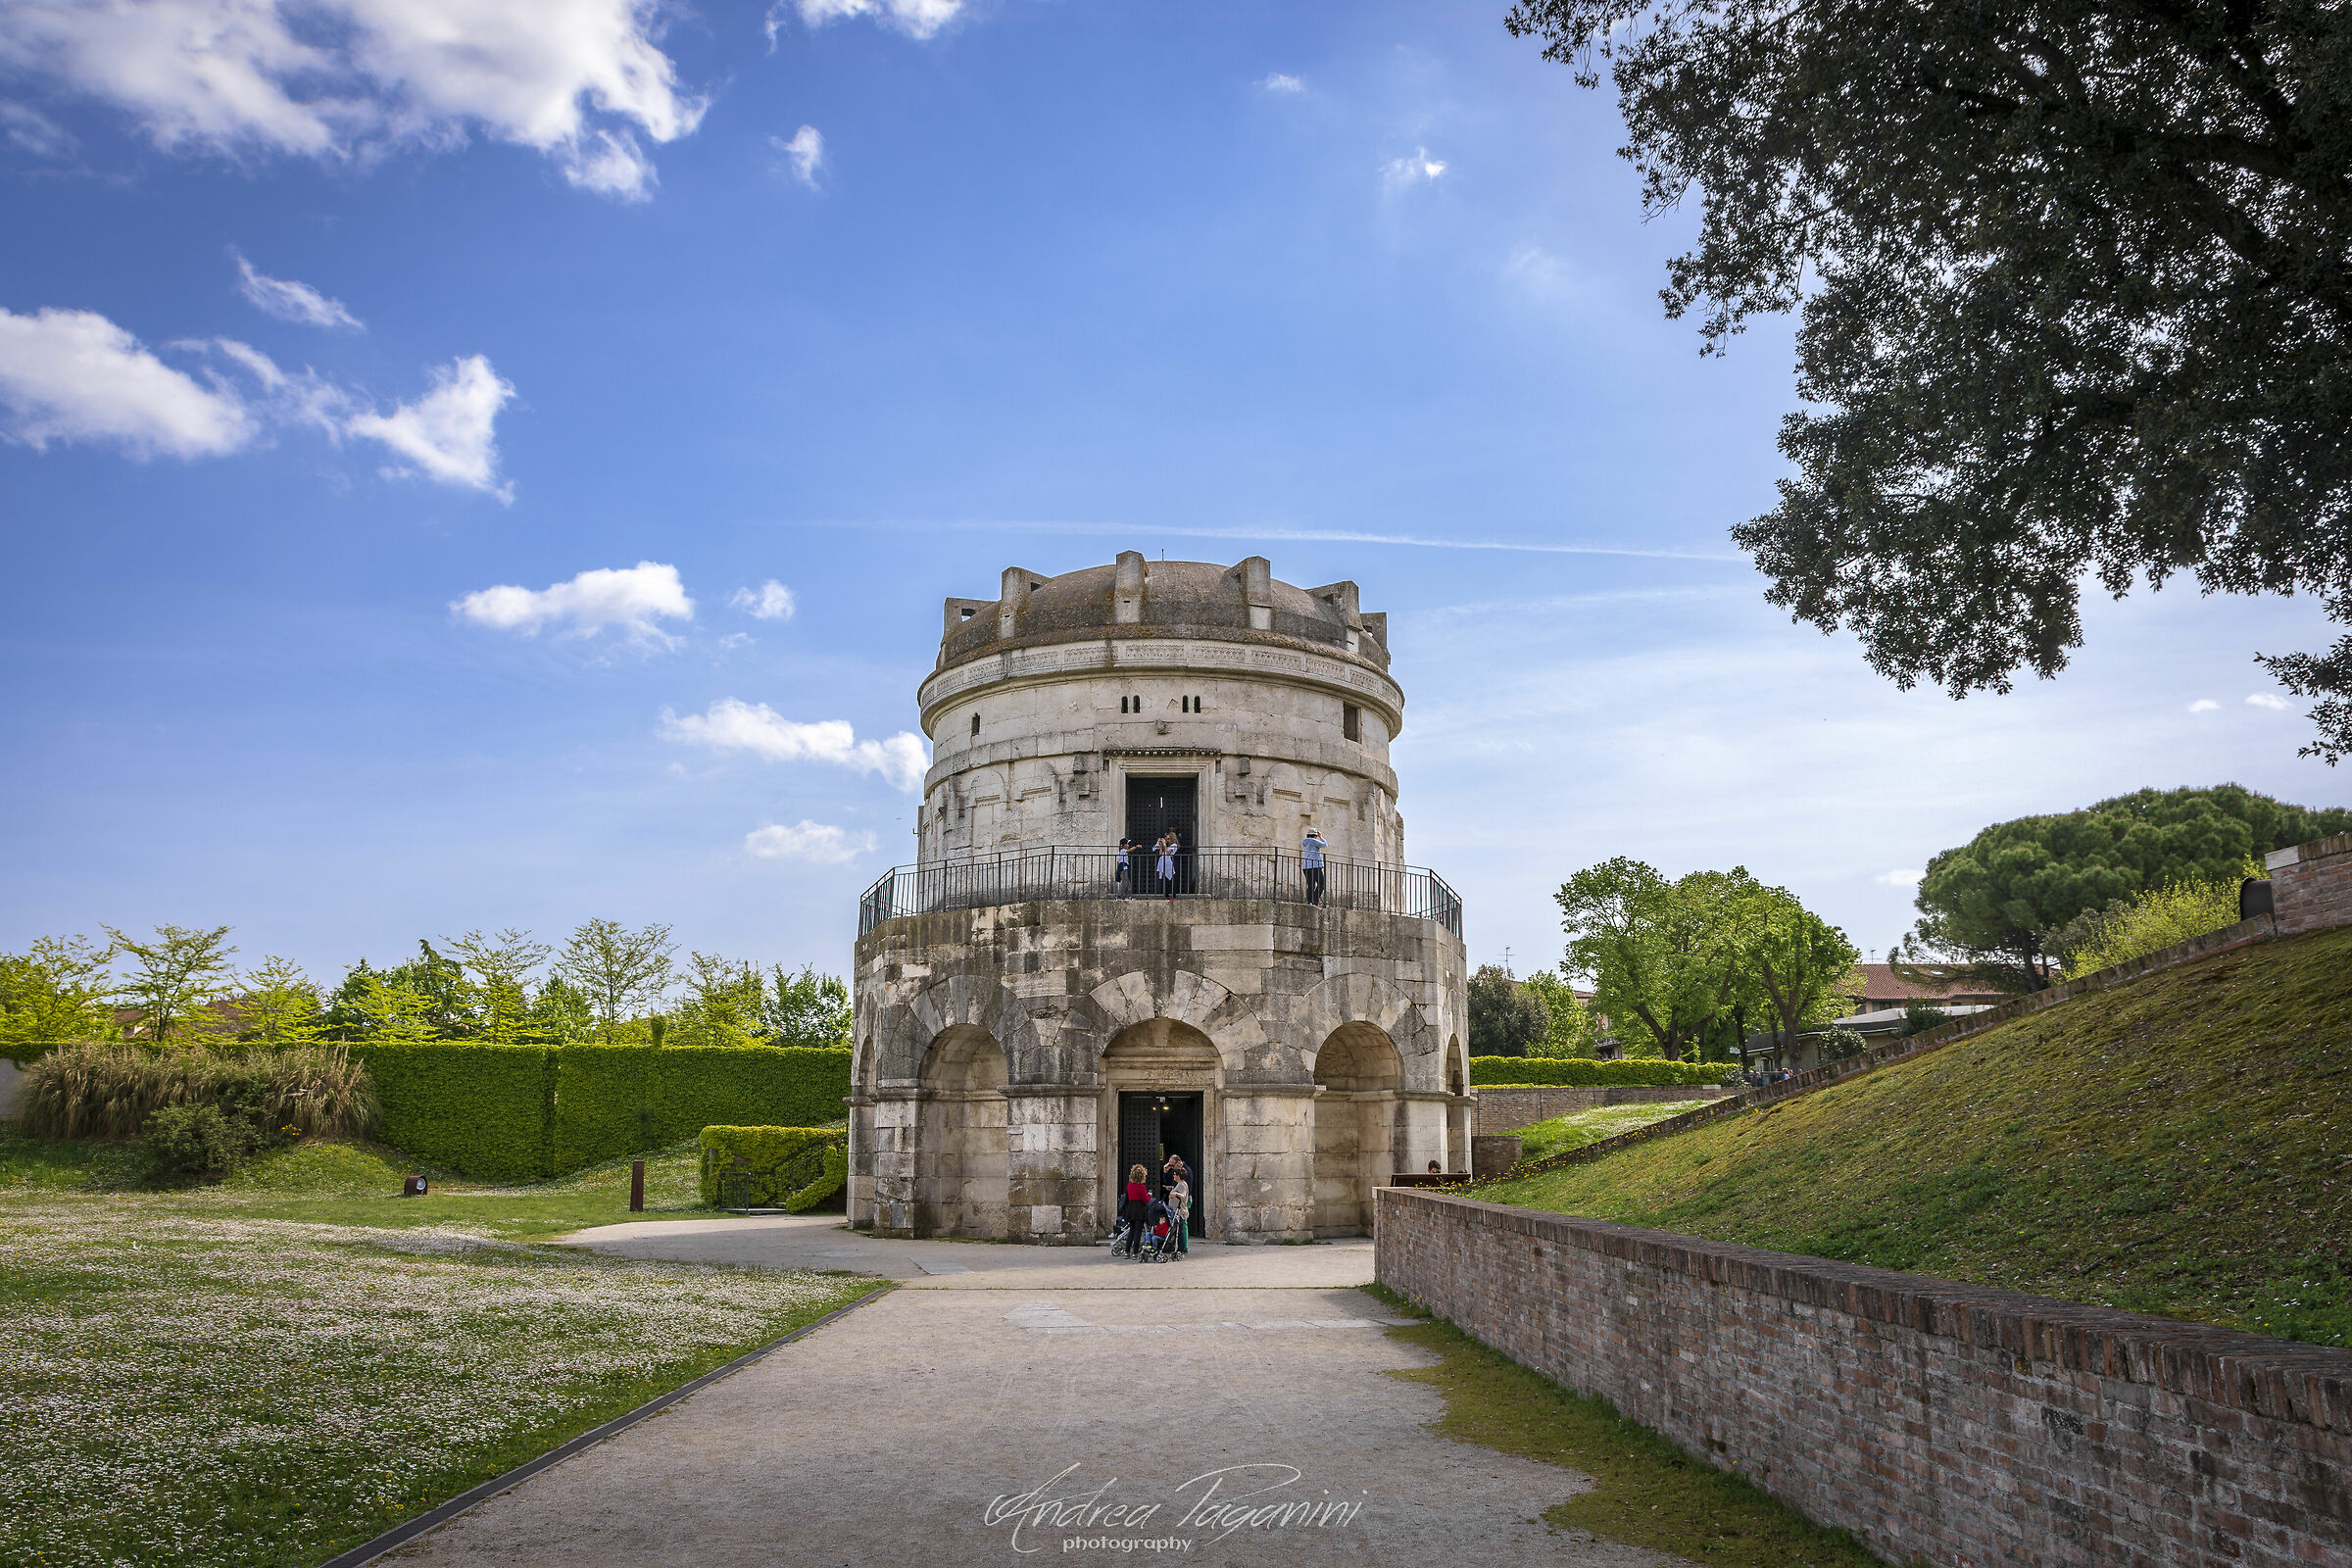 Mausoleum of Theodoric [Ravenna]...